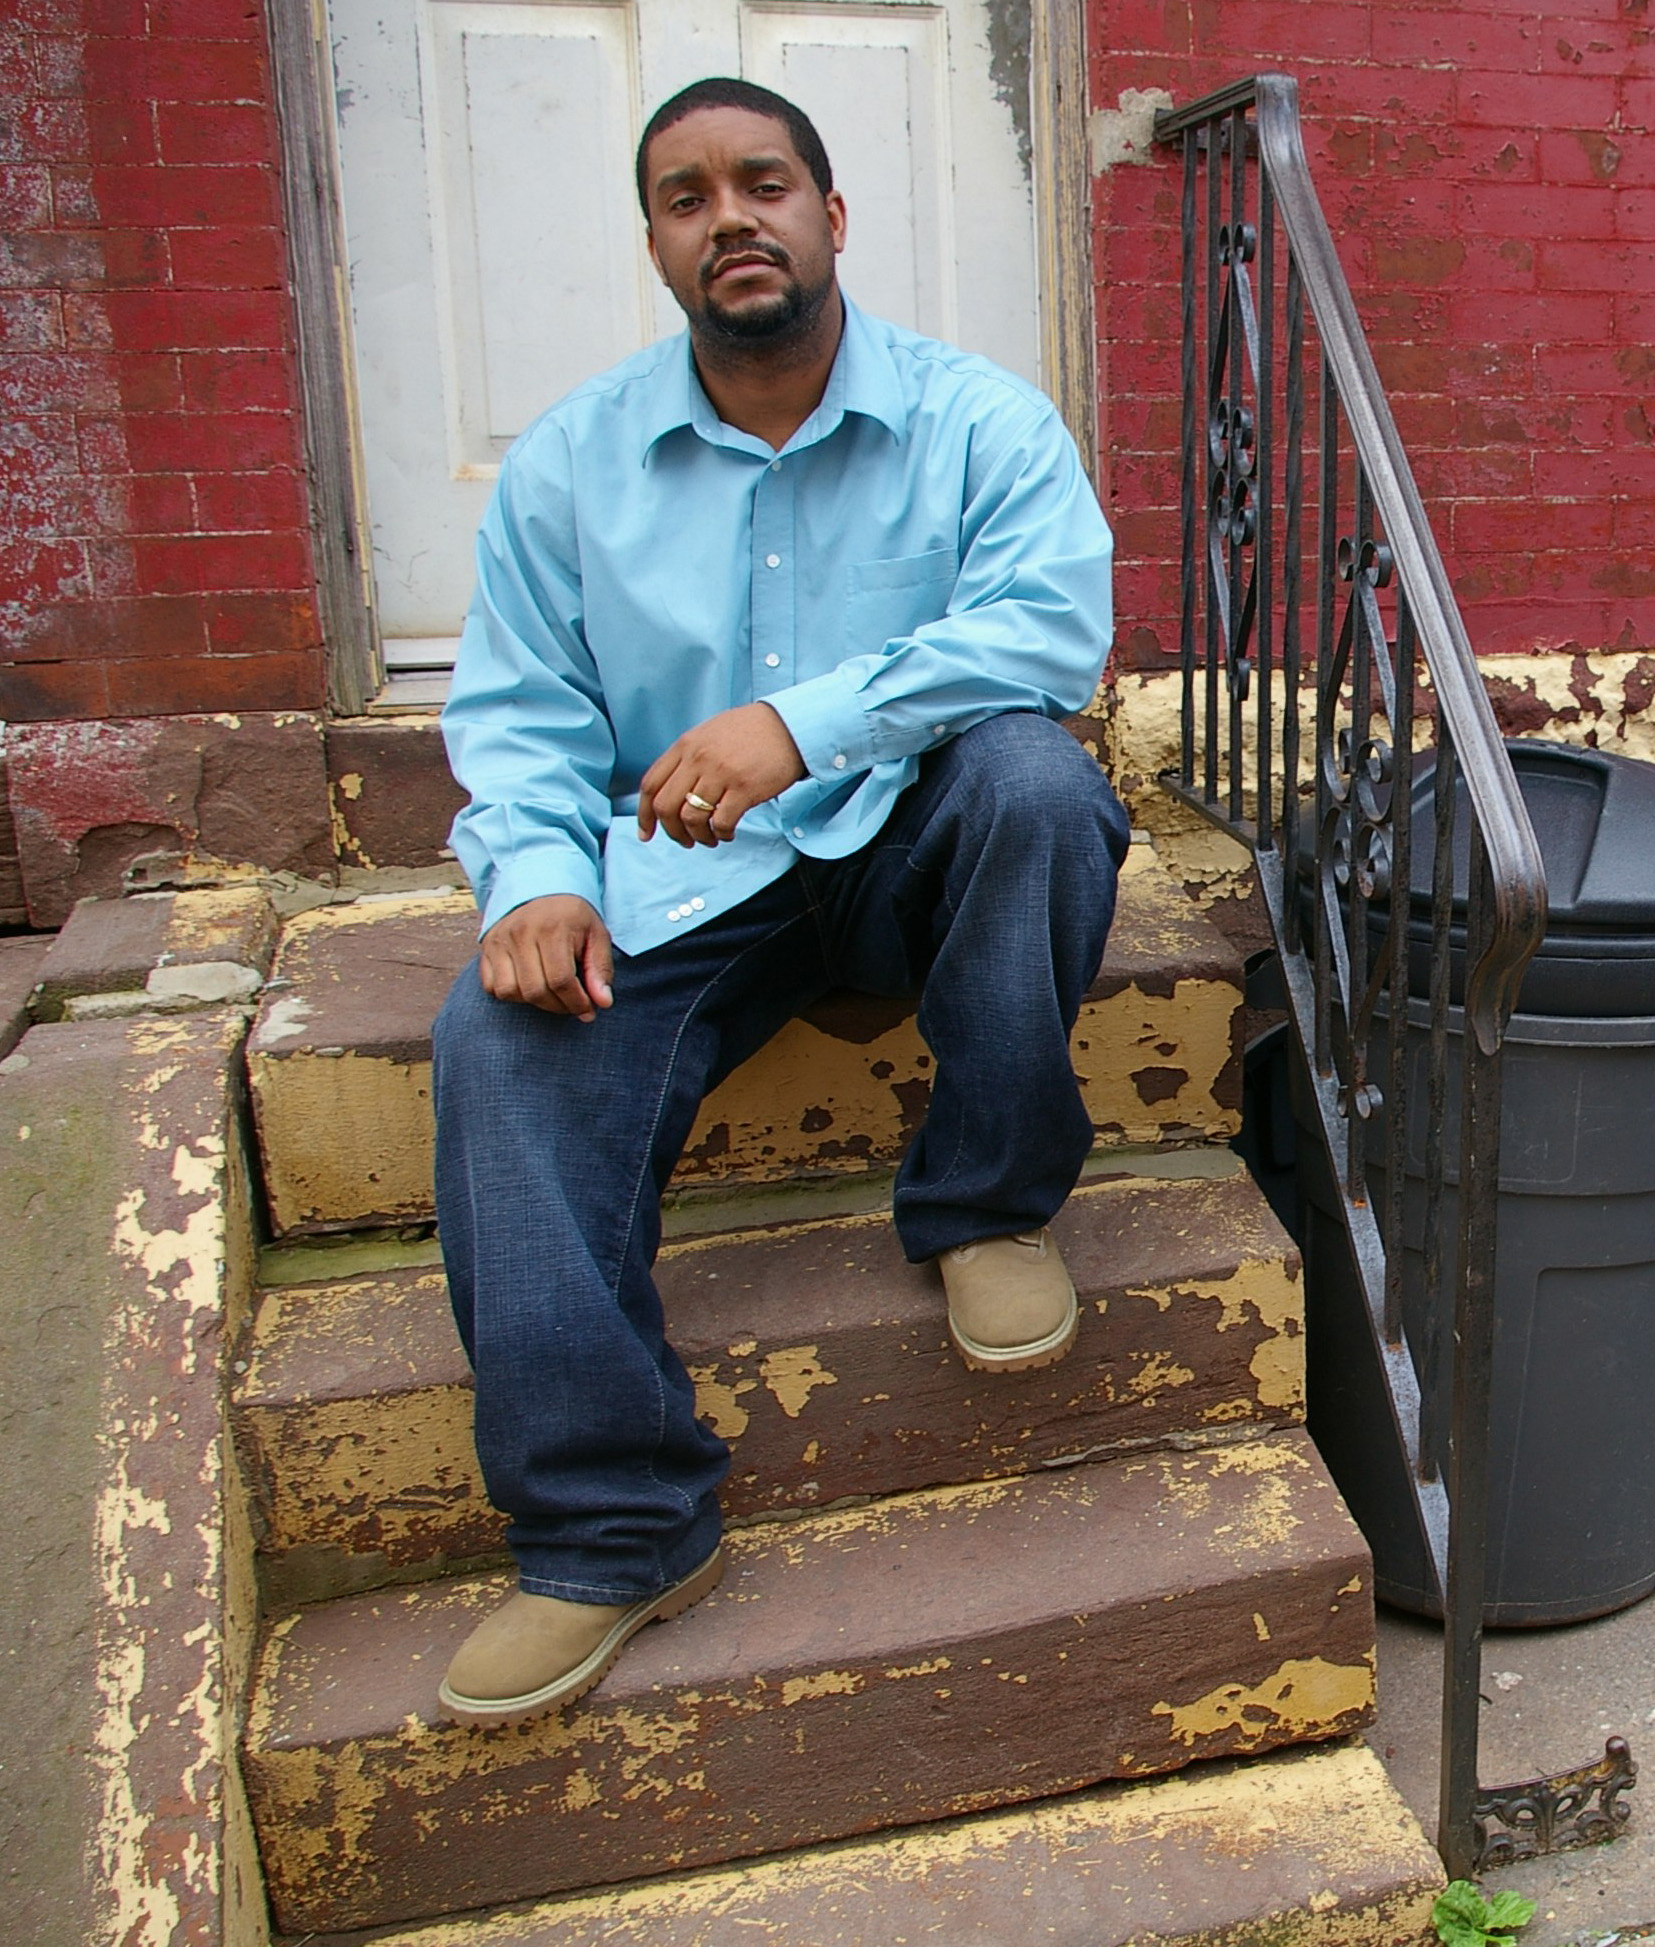 Donte sits on the stoop of his home in Strawberry Mansion.